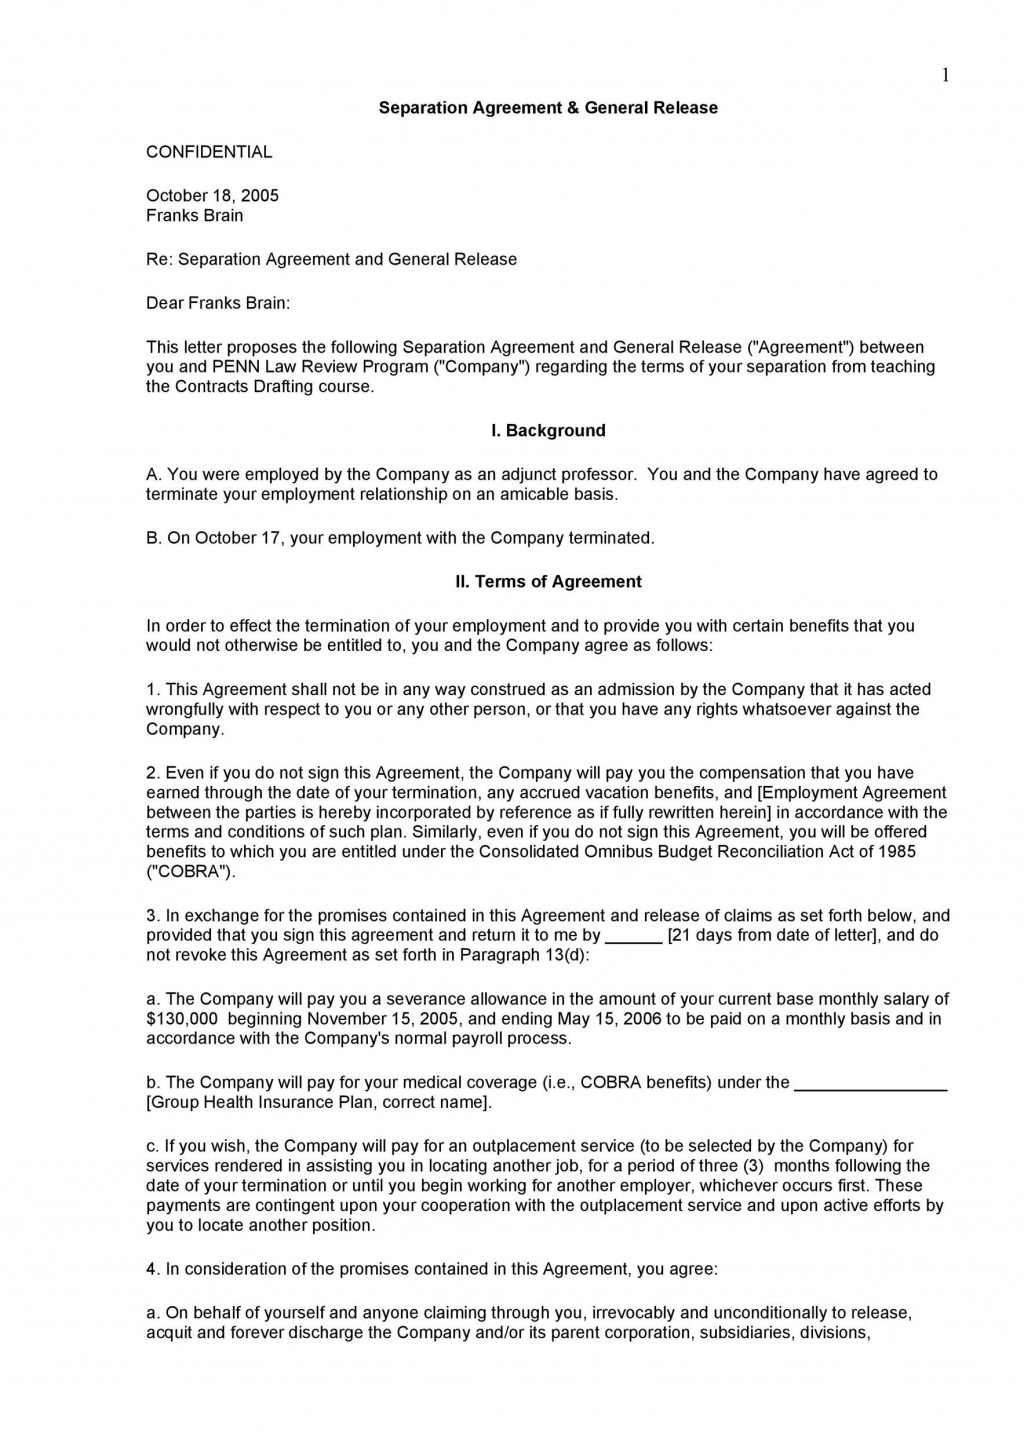 007 Formidable Employment Separation Agreement Template Highest Clarity  Nc Shrm Employee FloridaLarge